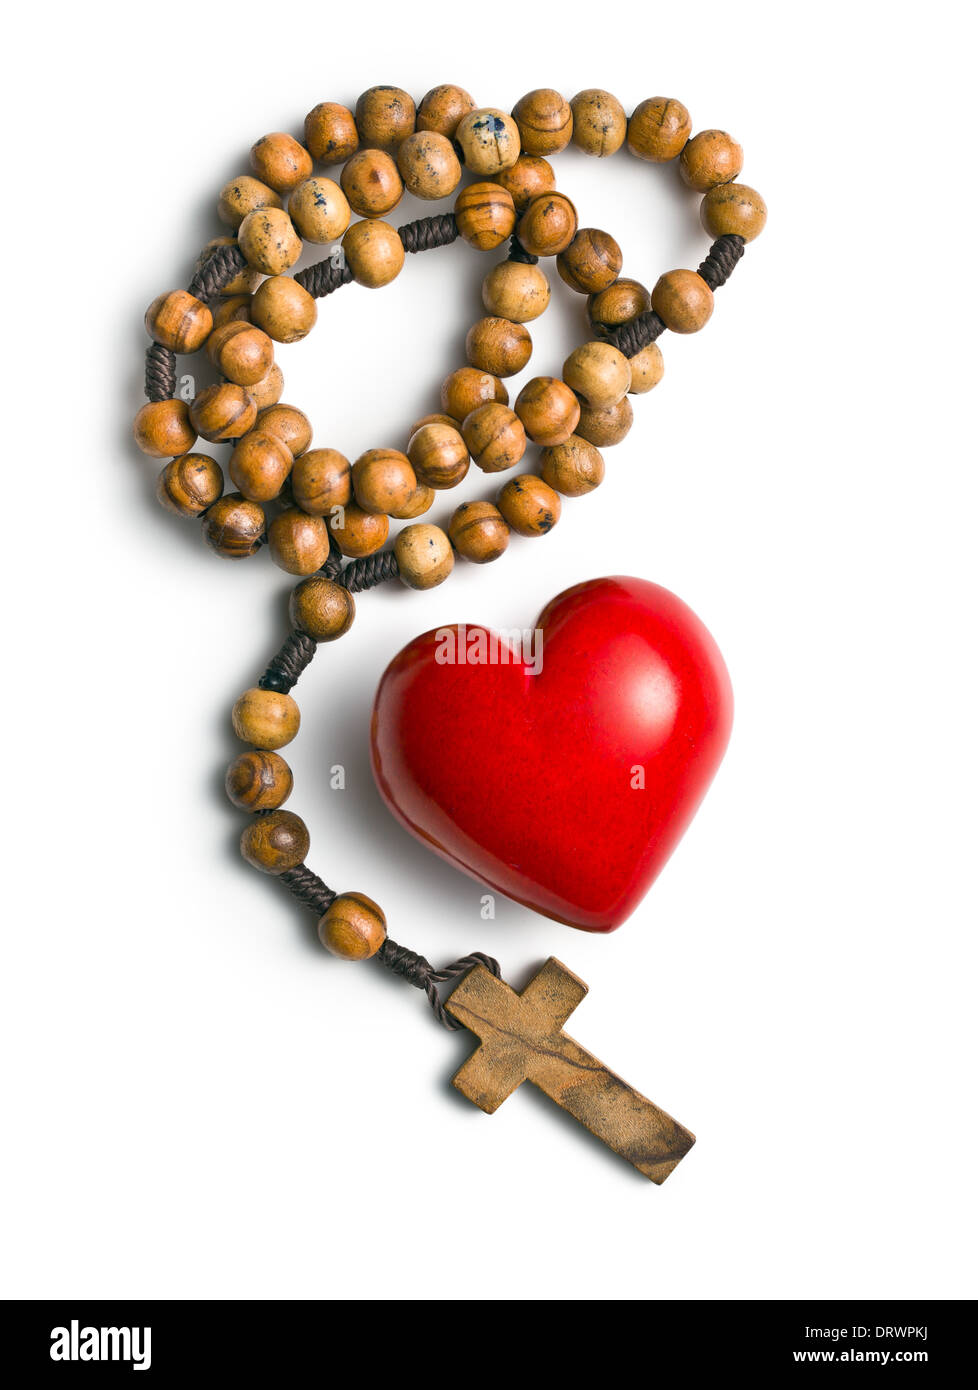 Top View Of Rosary With Heart Of Stone On White Background Stock